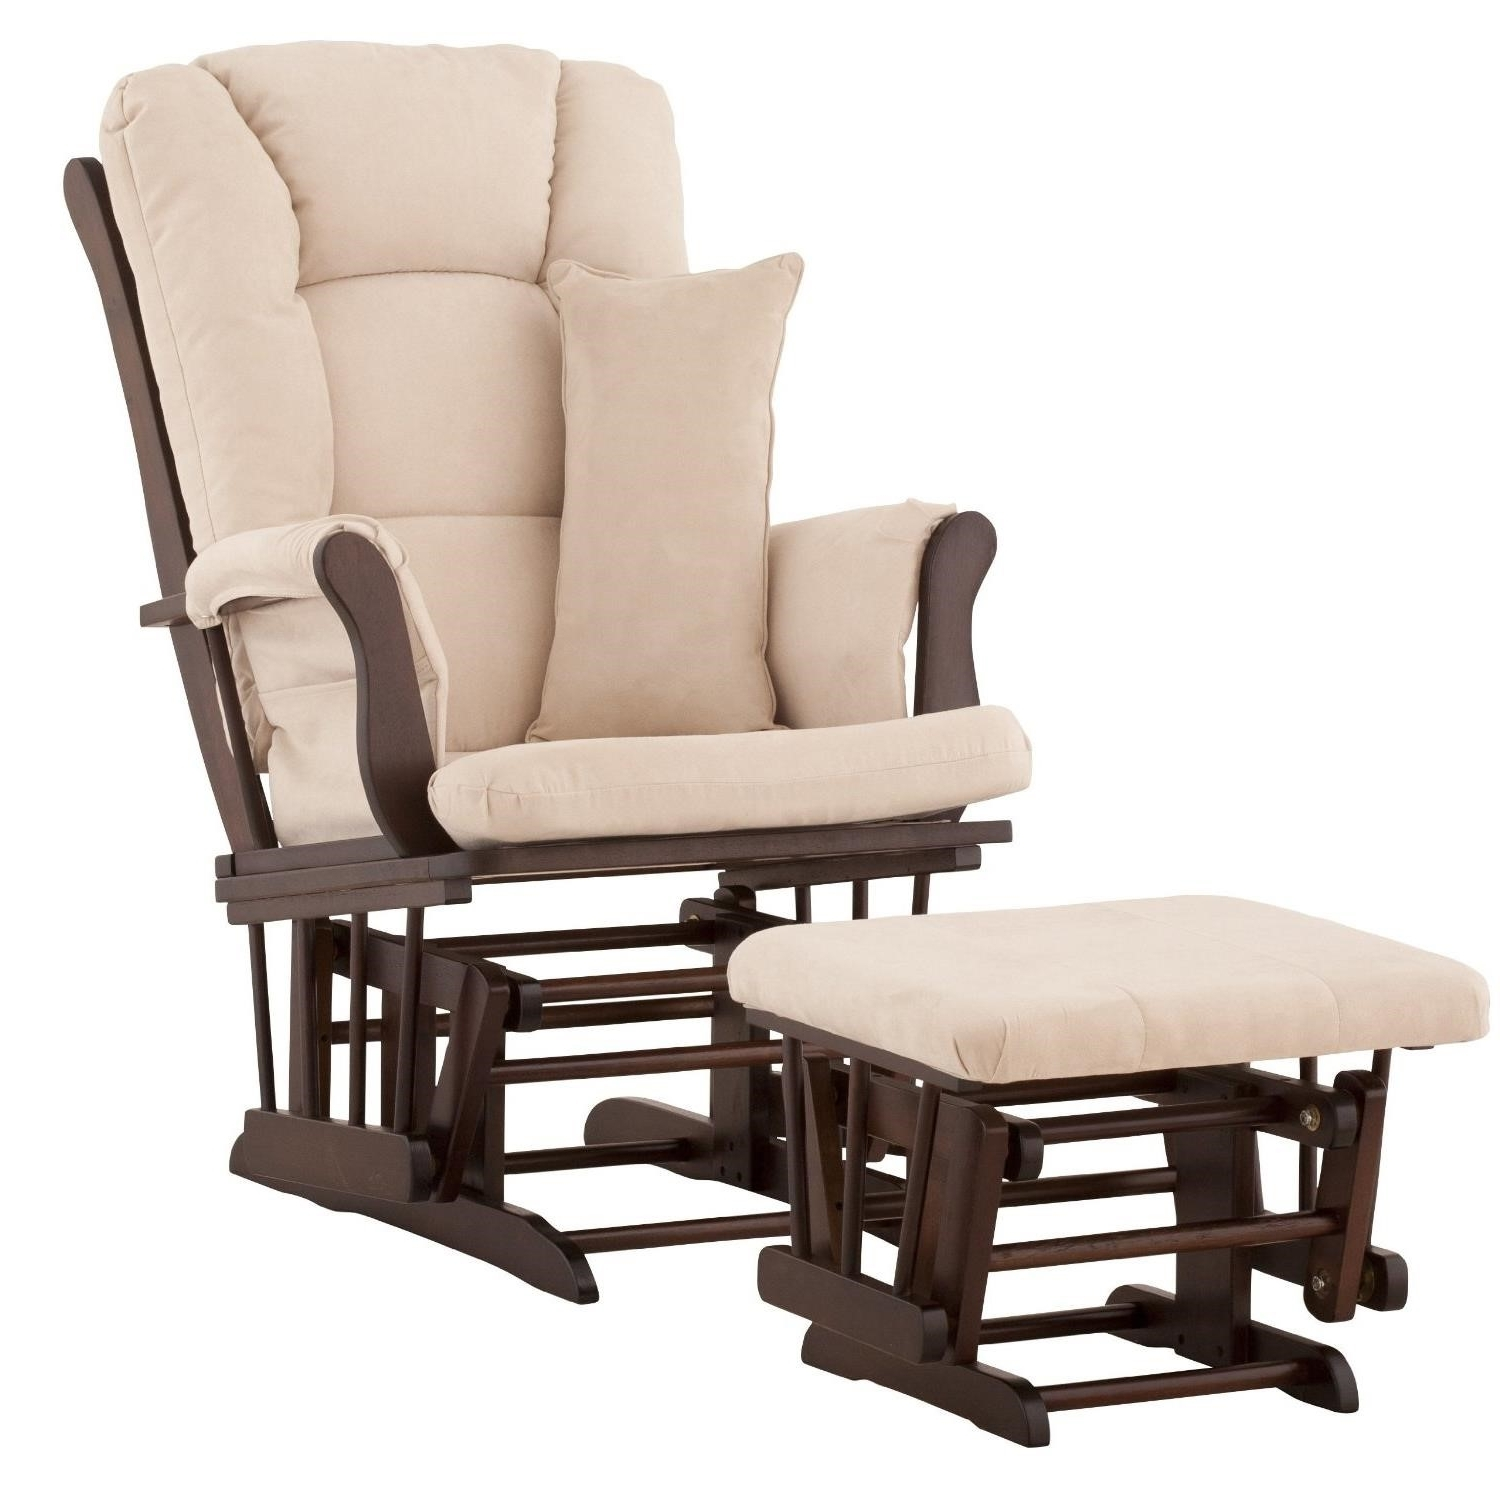 Bedroom: Decorate Nursery Room Ideas With Glider Rocking Chair And Inside Favorite Rocking Chairs With Footstool (View 18 of 20)